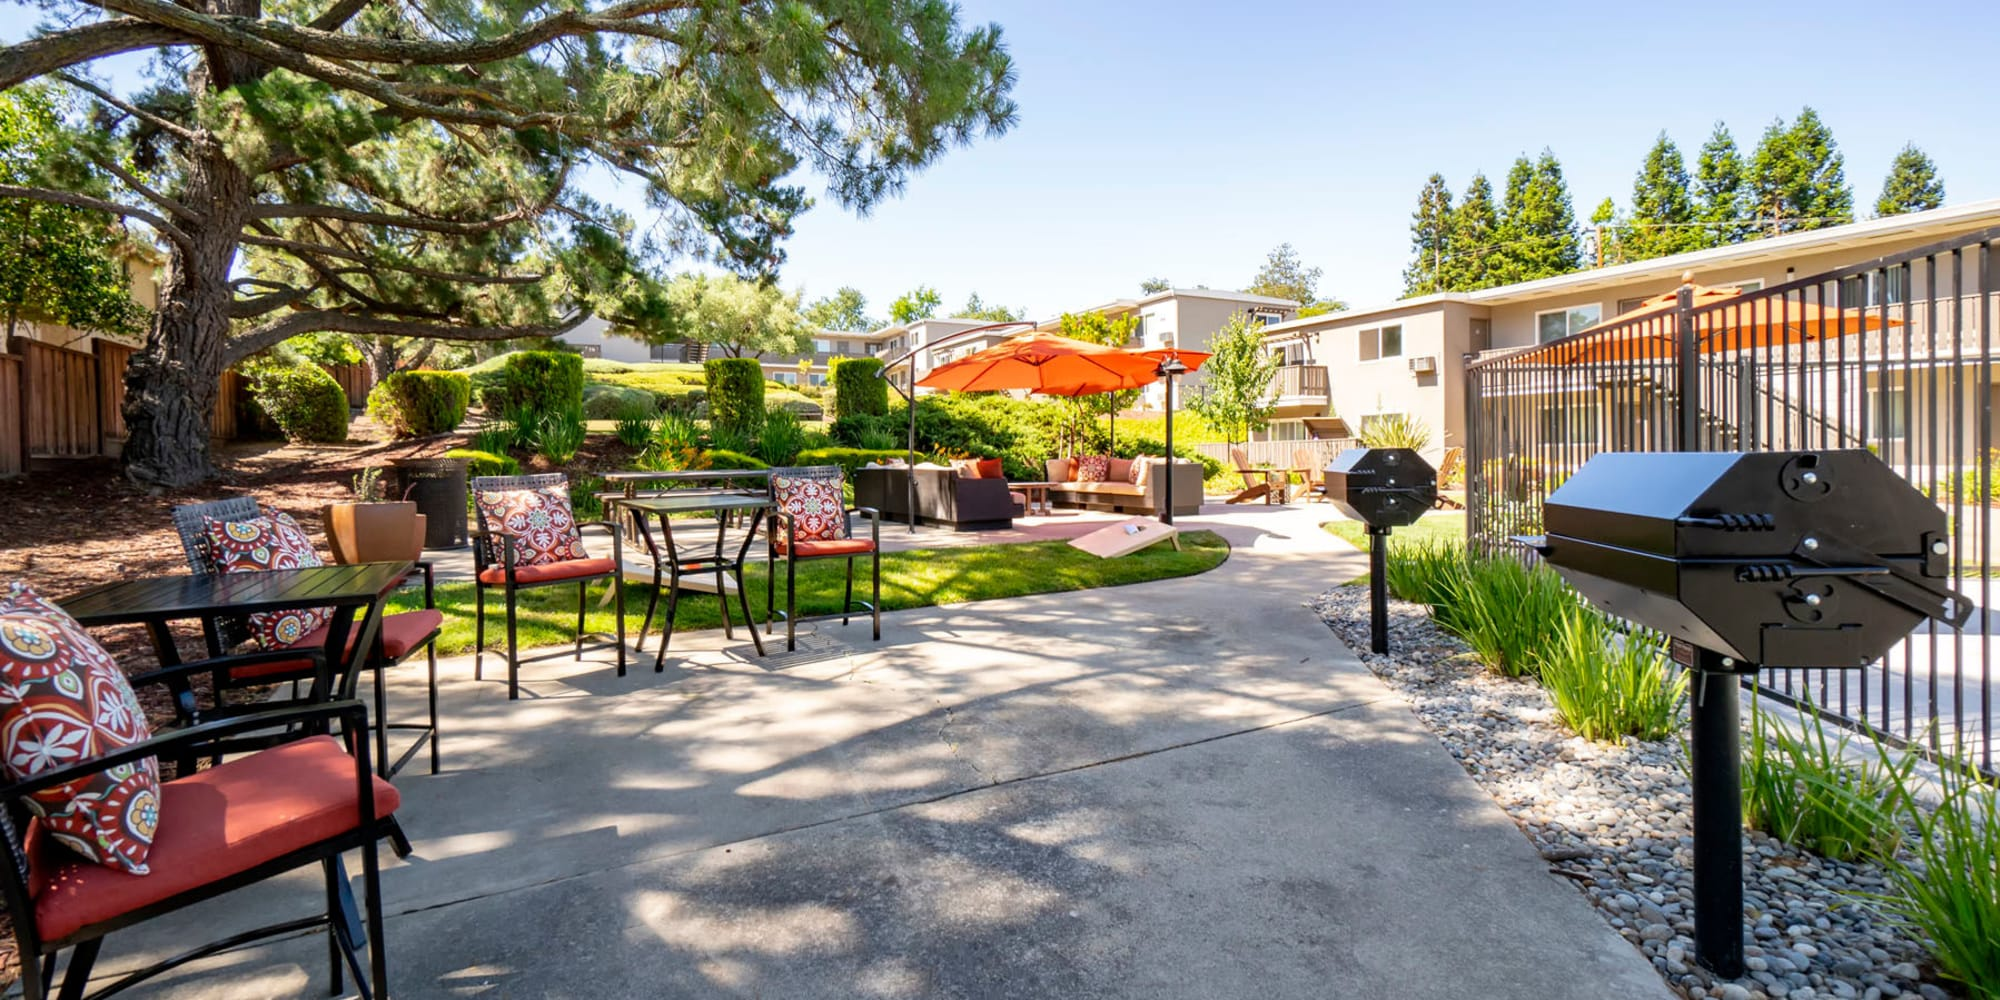 Peaceful outdoor lounge areas near barbecue stations at Pleasanton Heights in Pleasanton, California